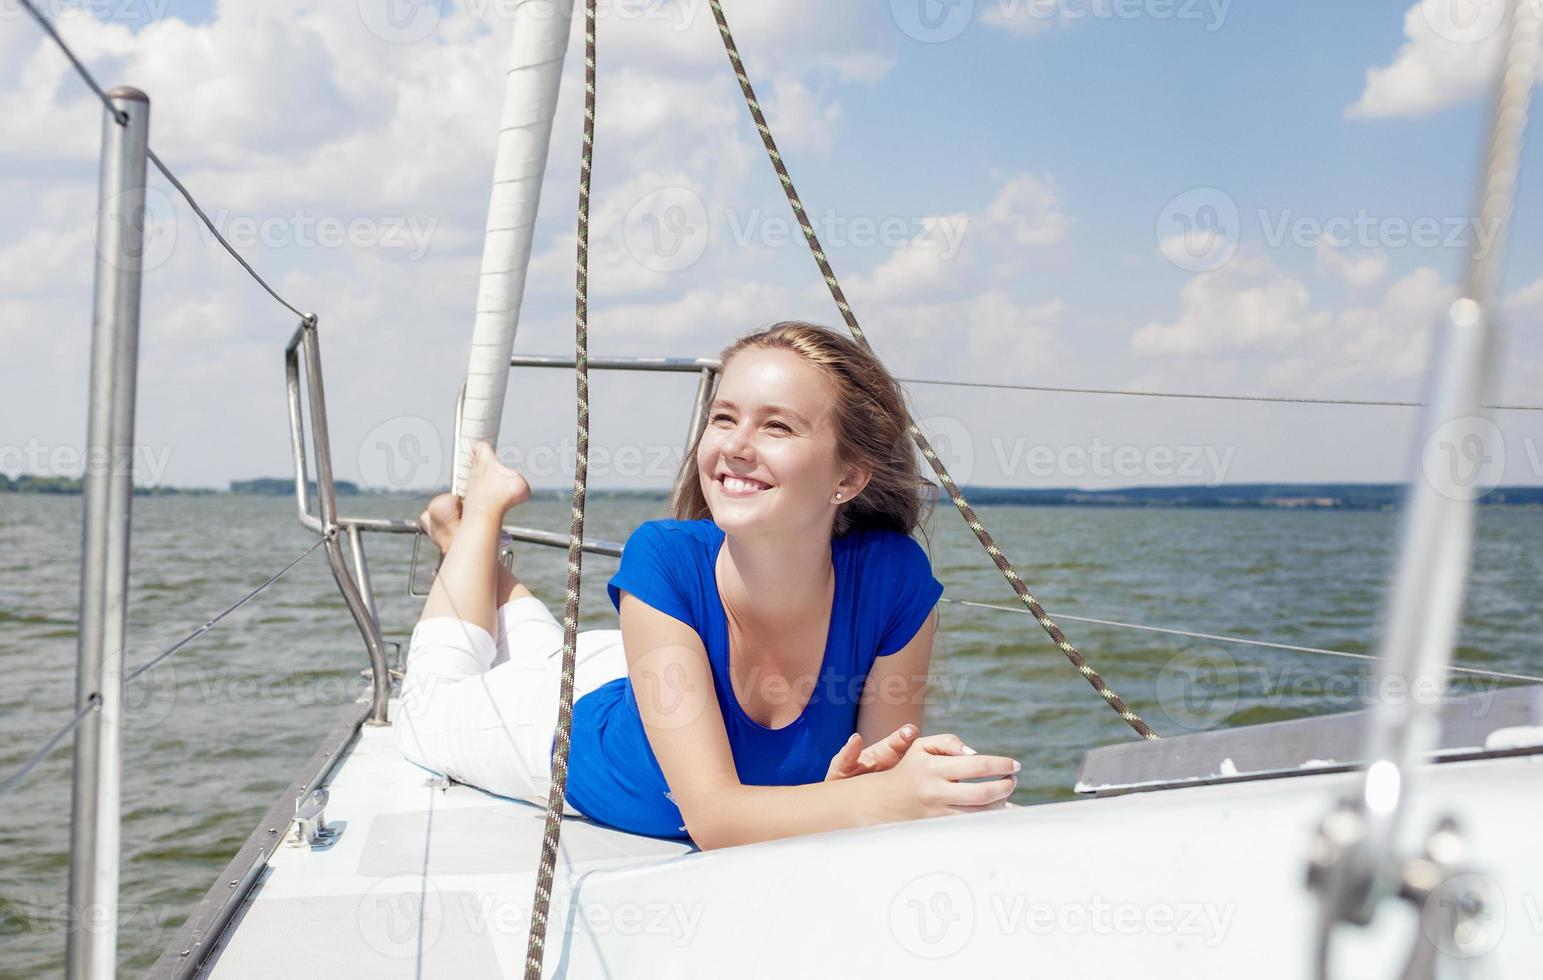 Travelling Concepts: Smiling Positive Caucasian Woman on White Yacht photo